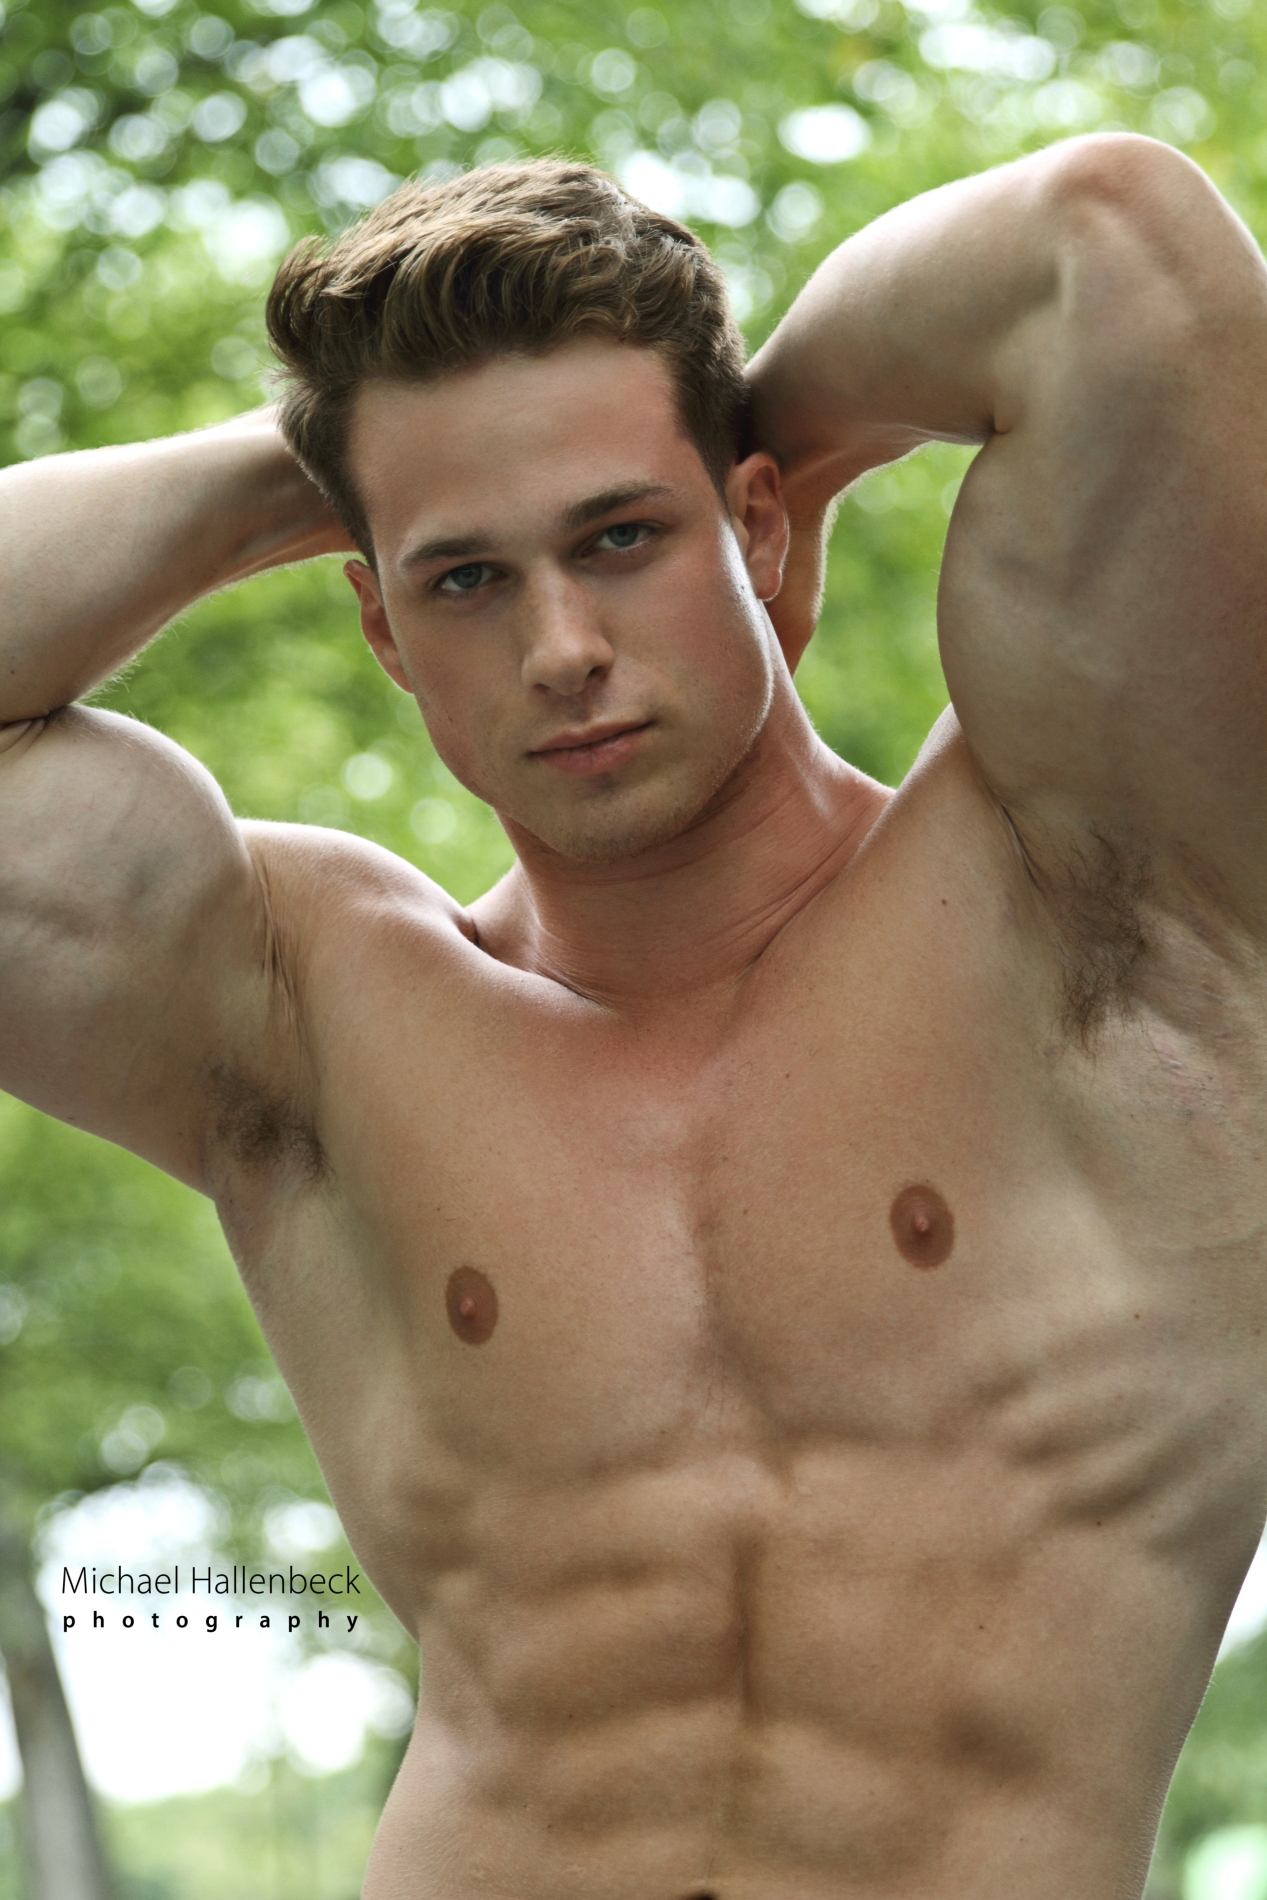 nick-sandell-by-michael-hallenbeck-pnv-network13